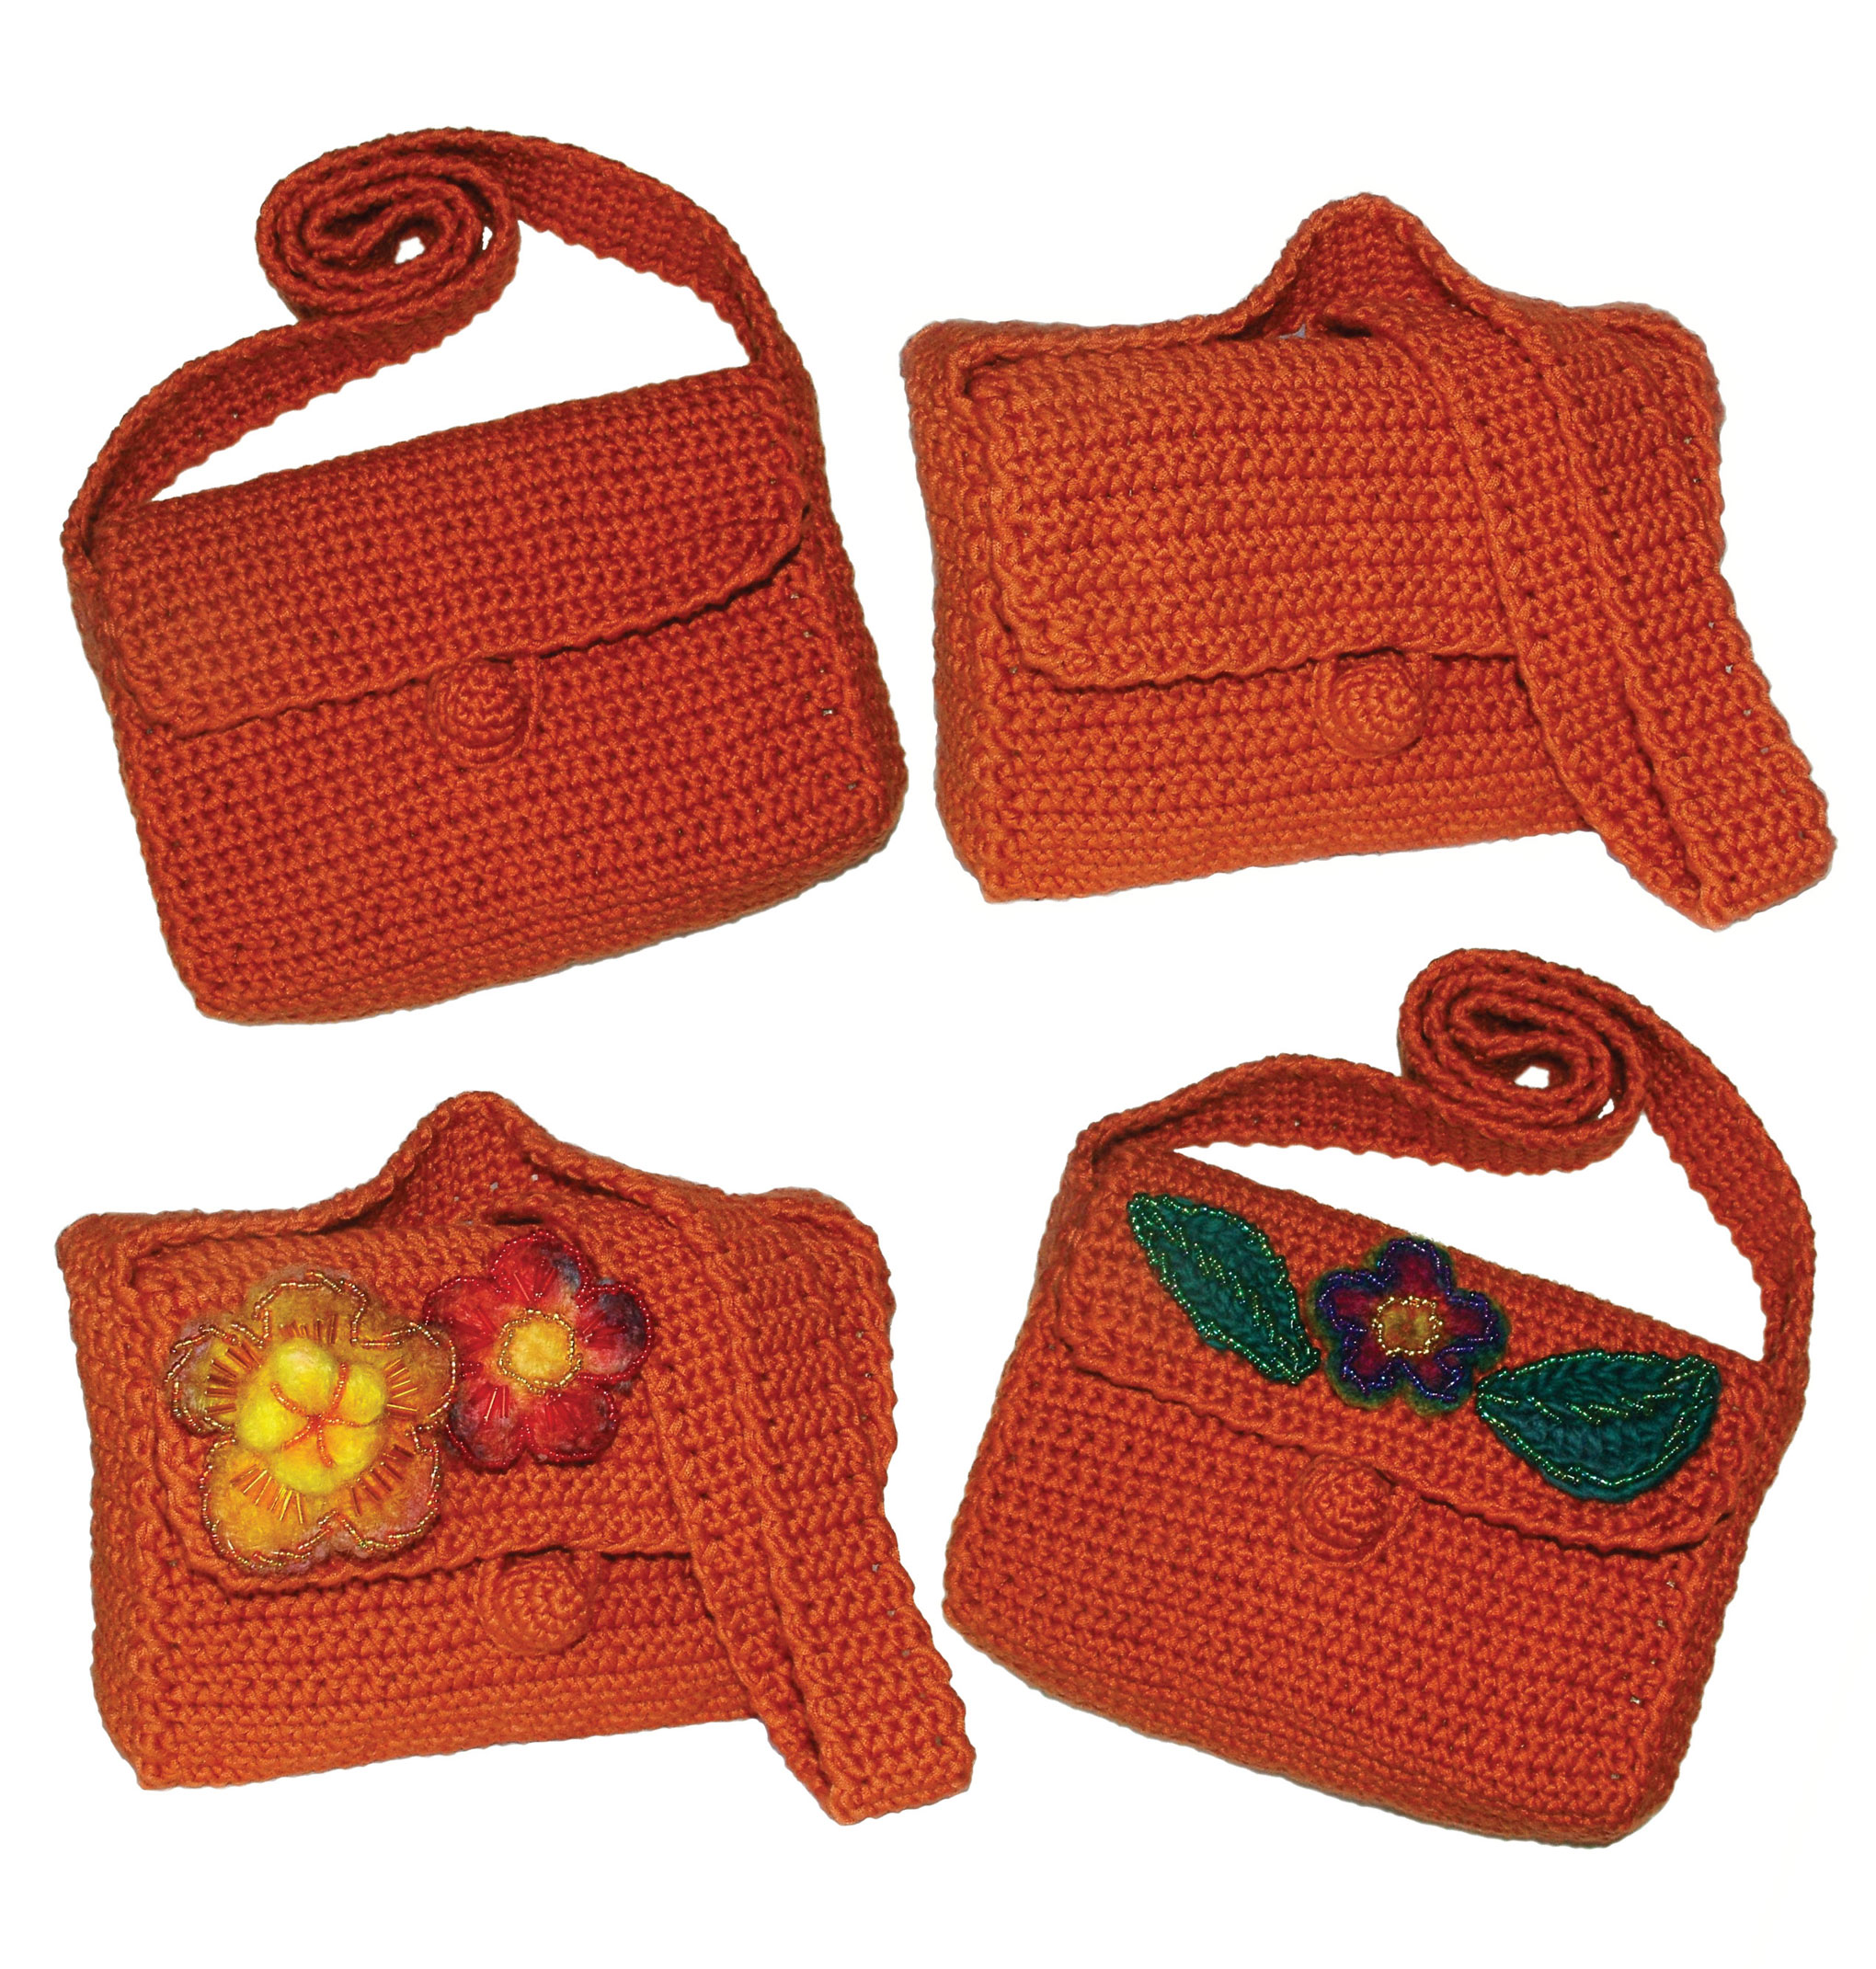 Little Crochet Bag - Designs by KN